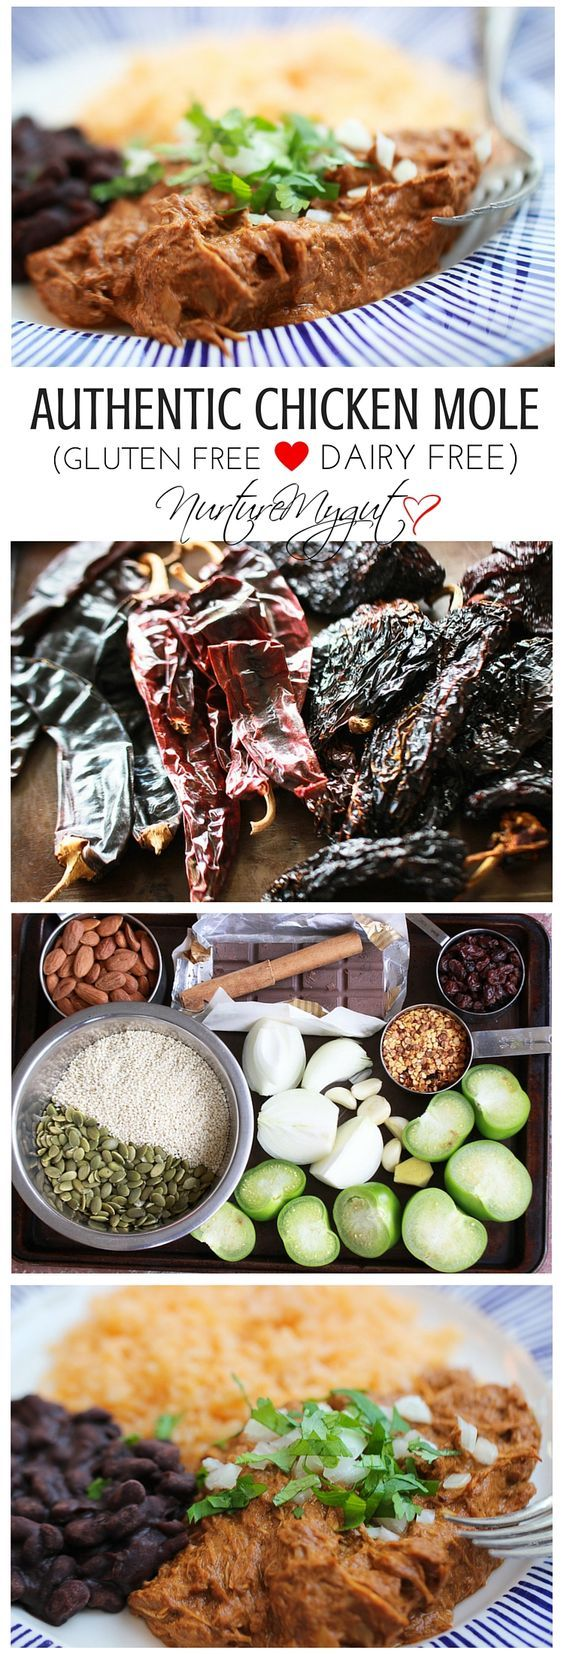 Authentic Chicken Mole Recipe.  Step by step tutorial for making Authentic Mexican Chicken Mole.  This recipe is bursting with flavor, has a hint of chocolate and mild heat.  This Authentic Chicken Mole recipe is gluten free & dairy free.  Perfect for a special occasion.  It is the best Mole recipe you will ever try!: